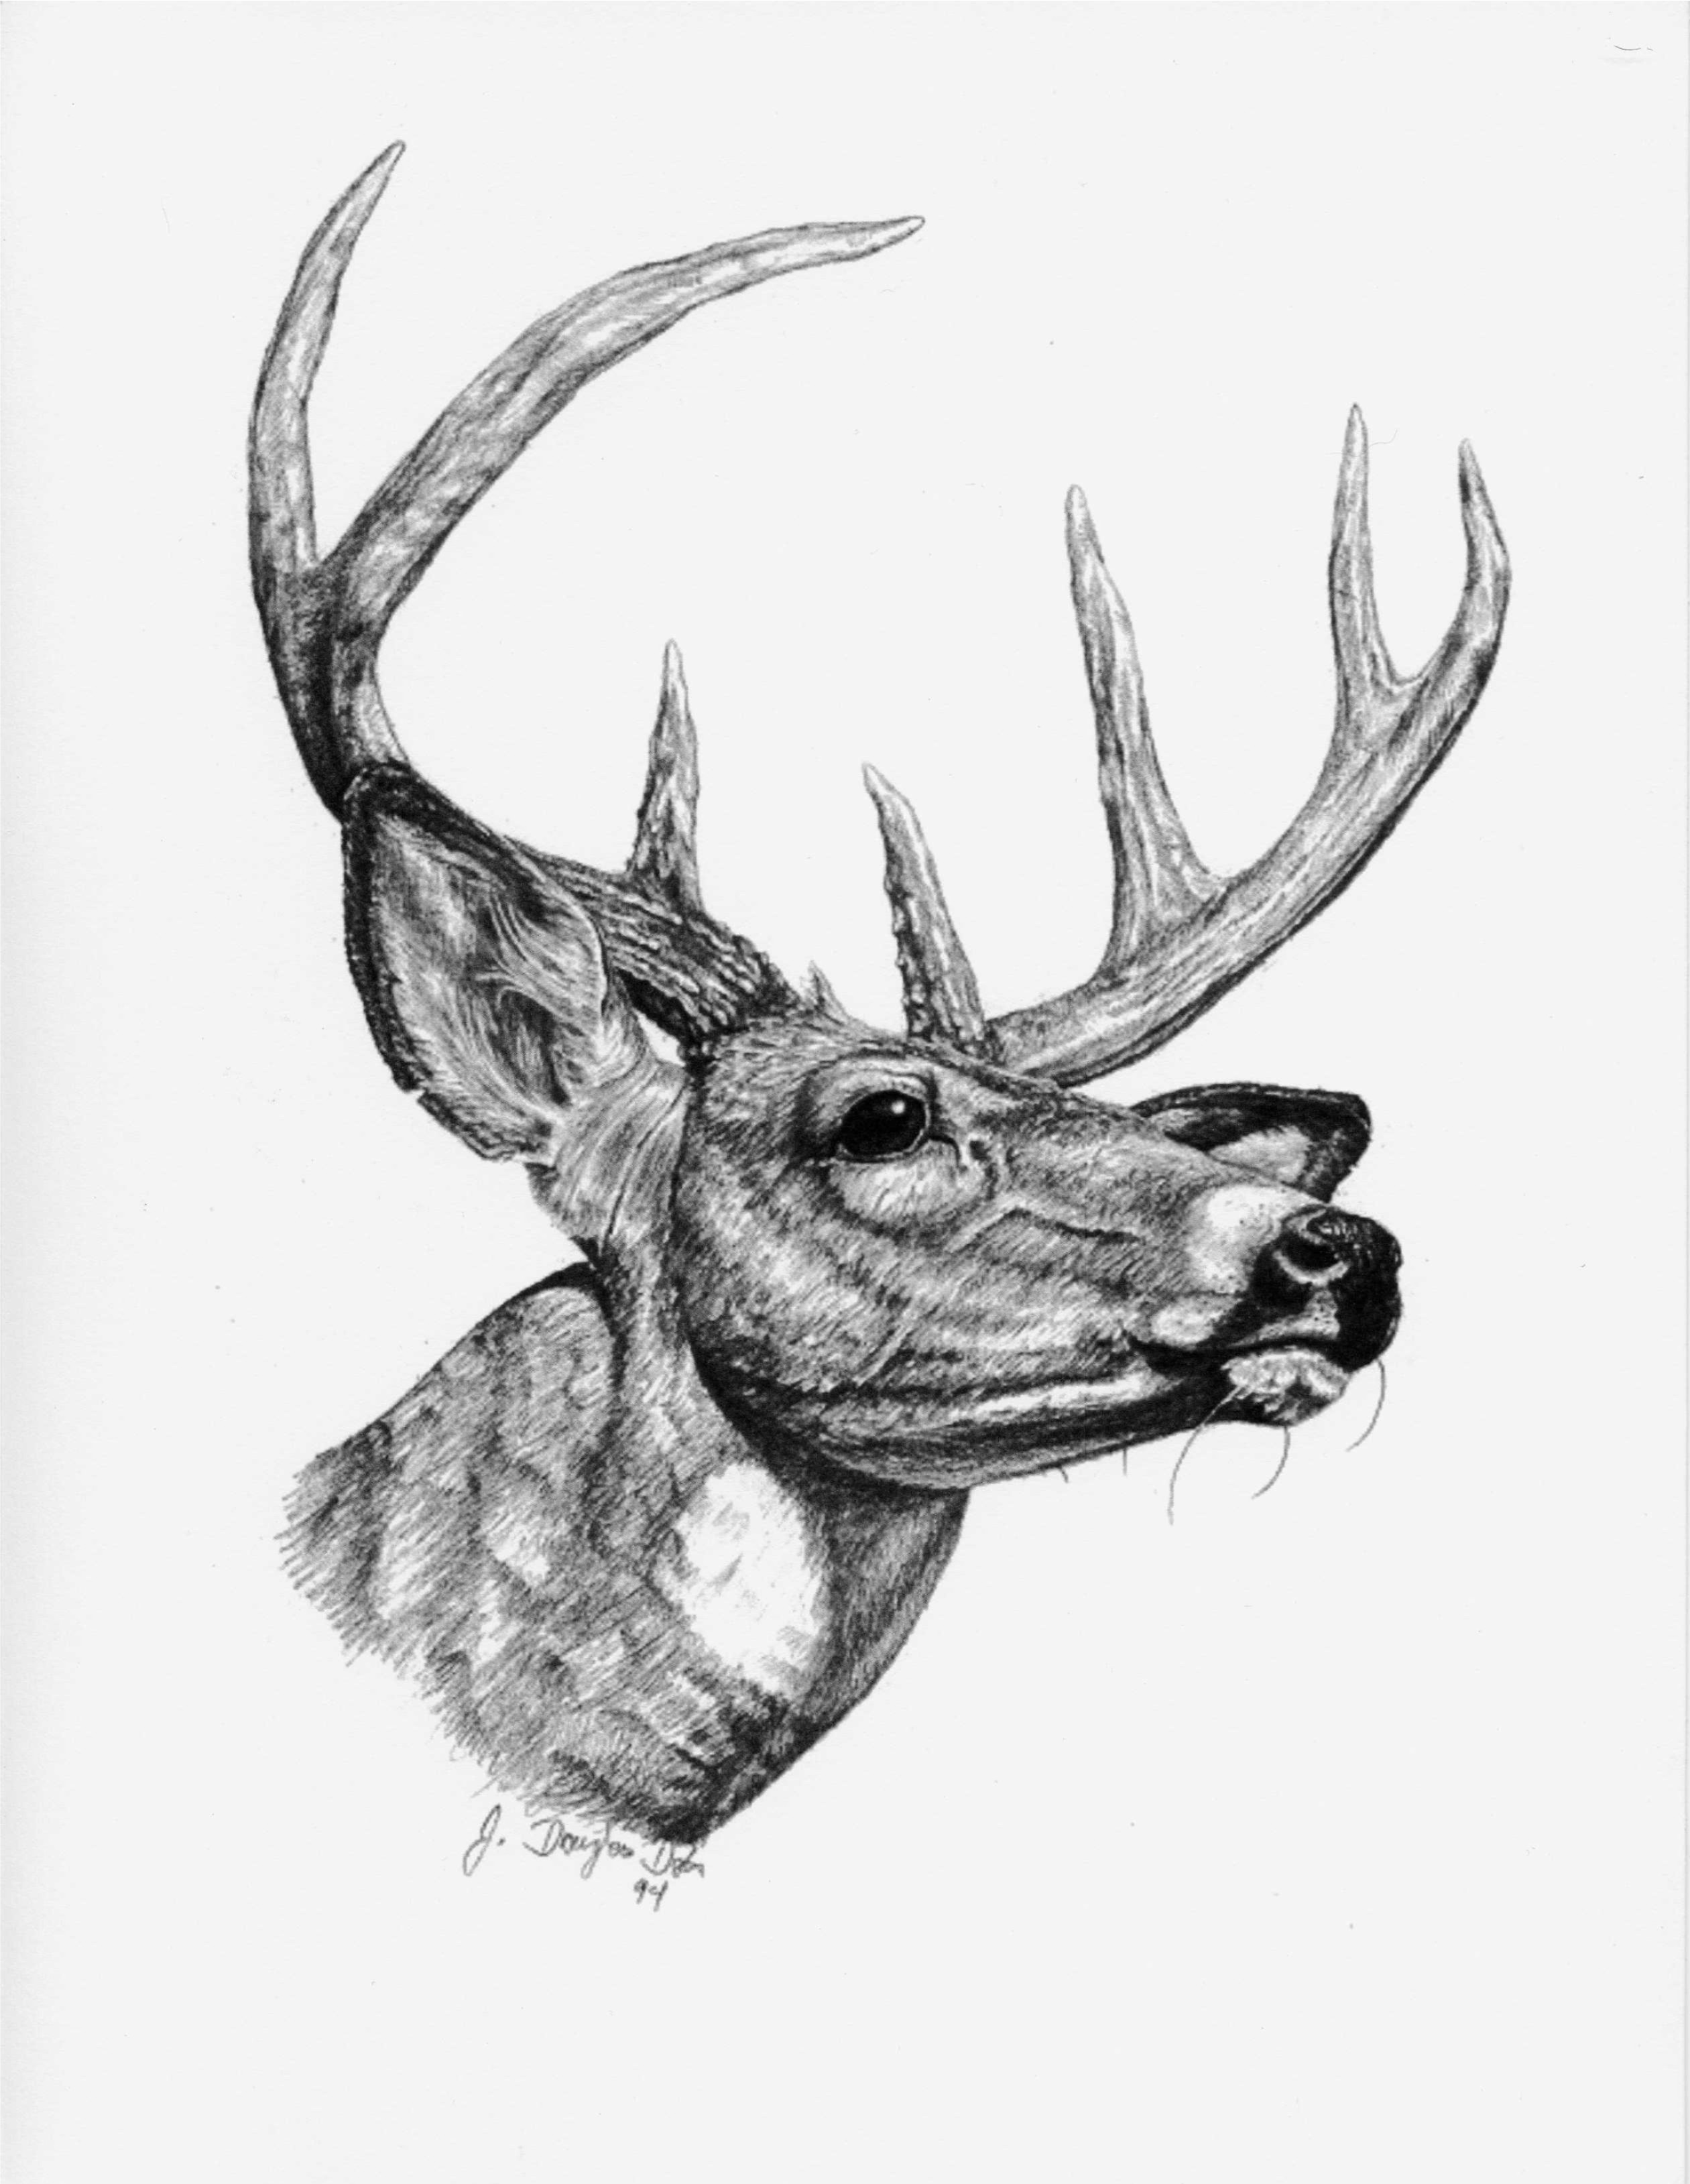 Drawn buck Deer Drawings: Drawing Gallery Pencil